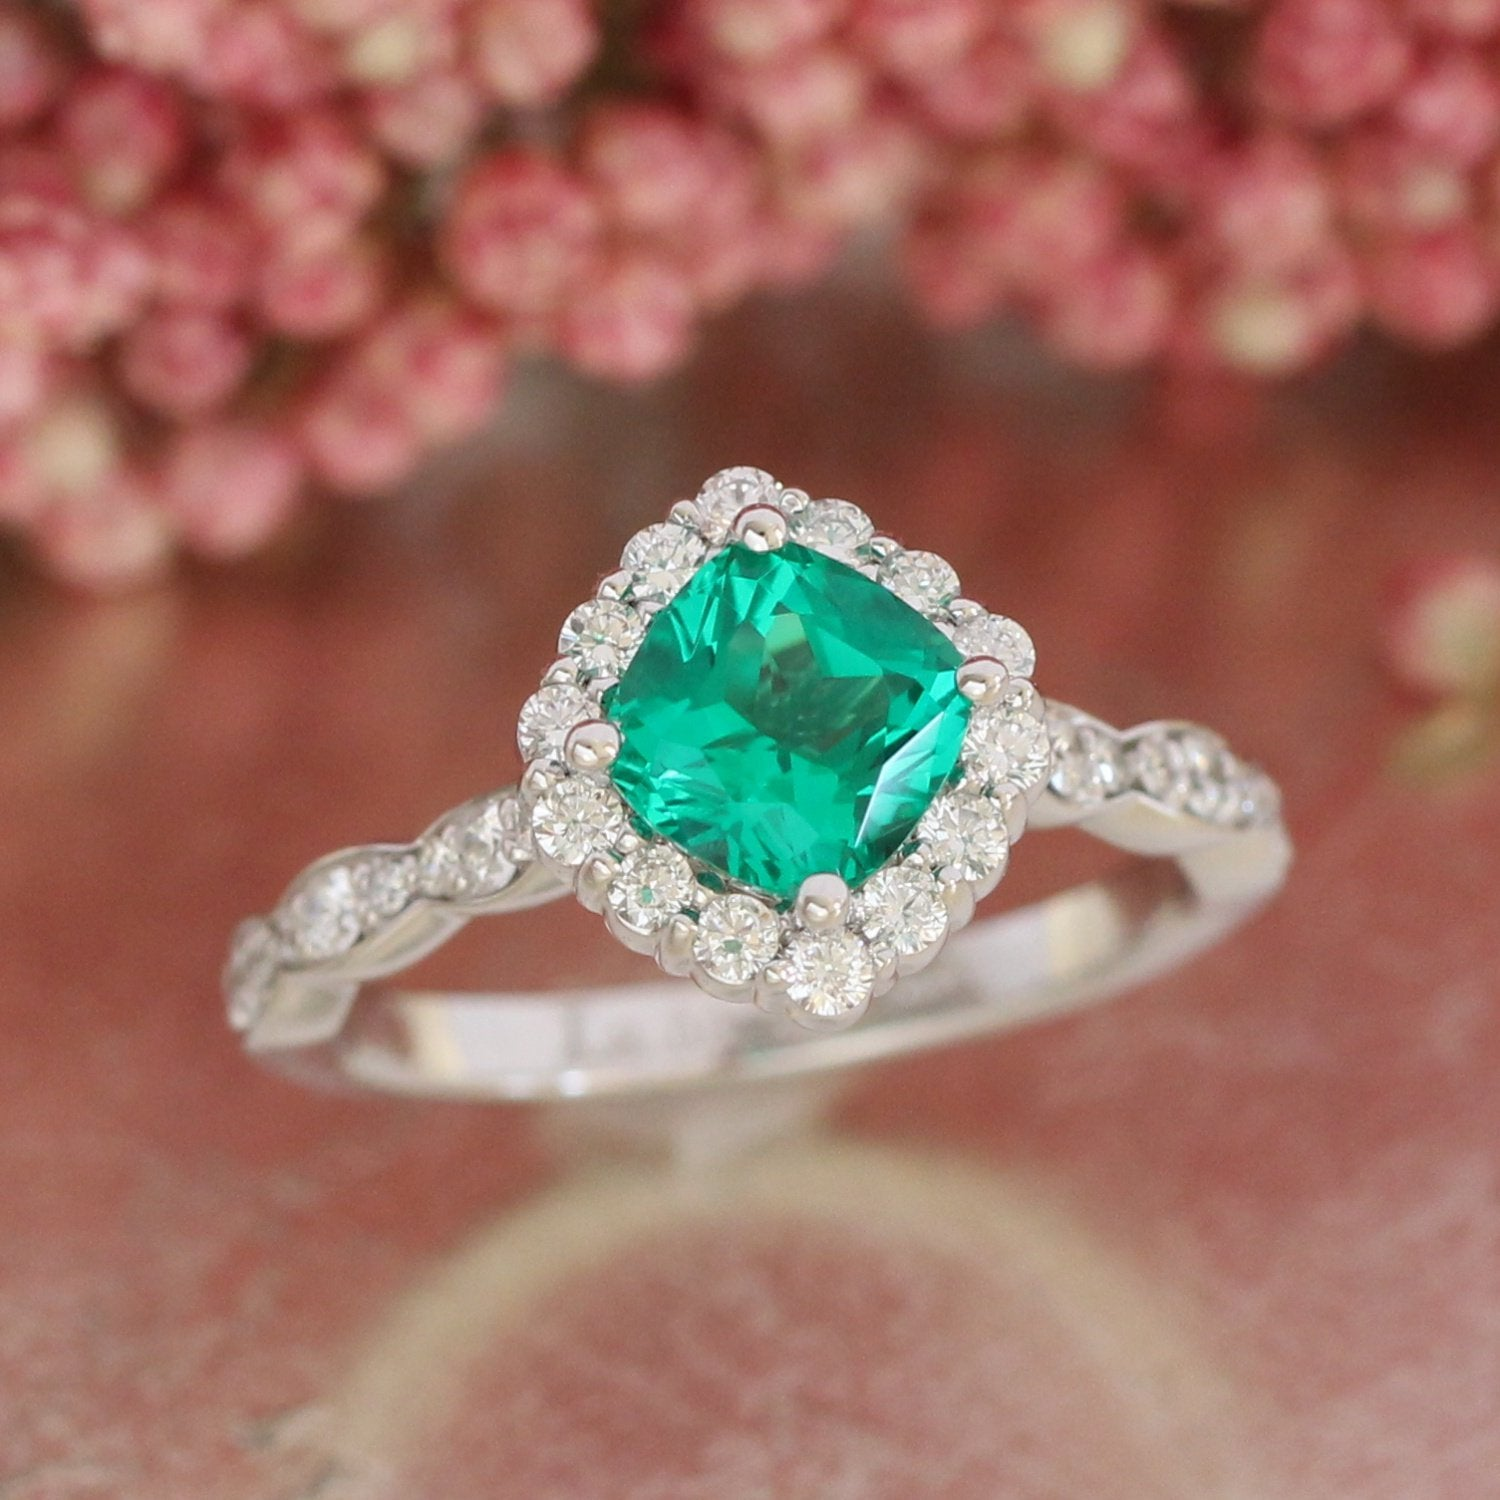 model obj cushion sapphire cut emerald print cgtrader rings ring stl jewelry models with